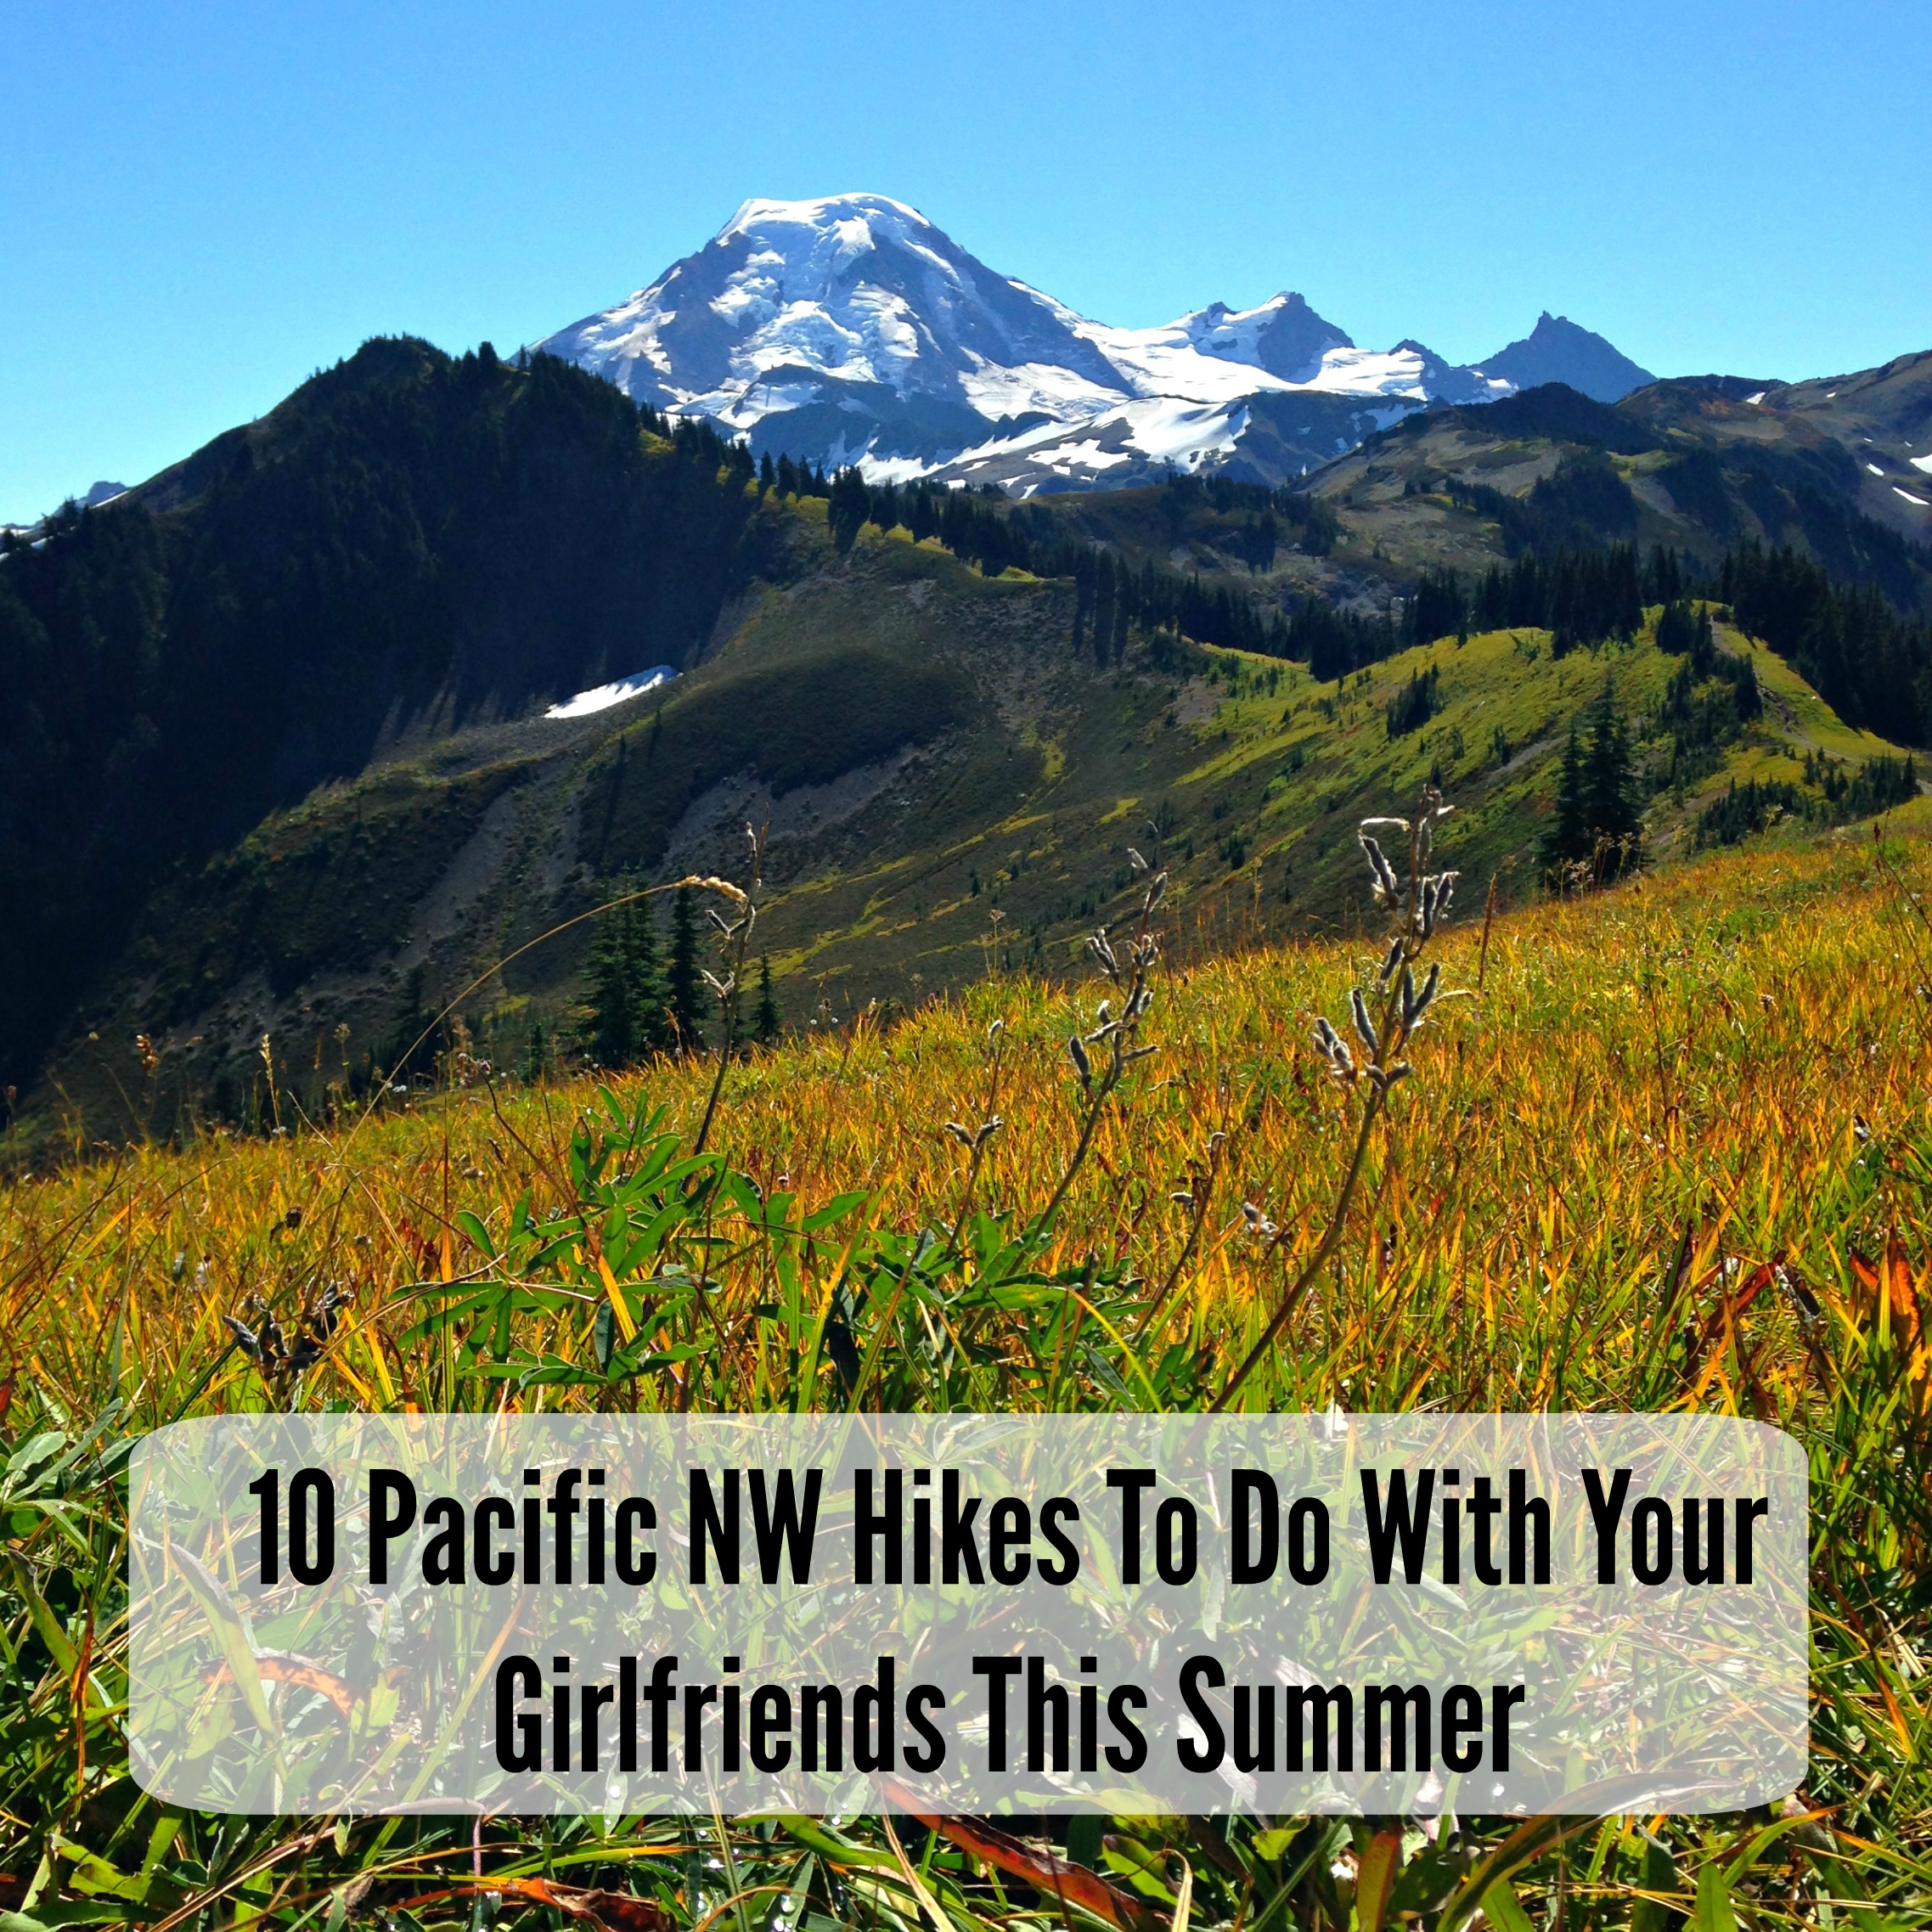 Ten Pacific Northwest Hikes to Do With Your Girlfriends This Summer